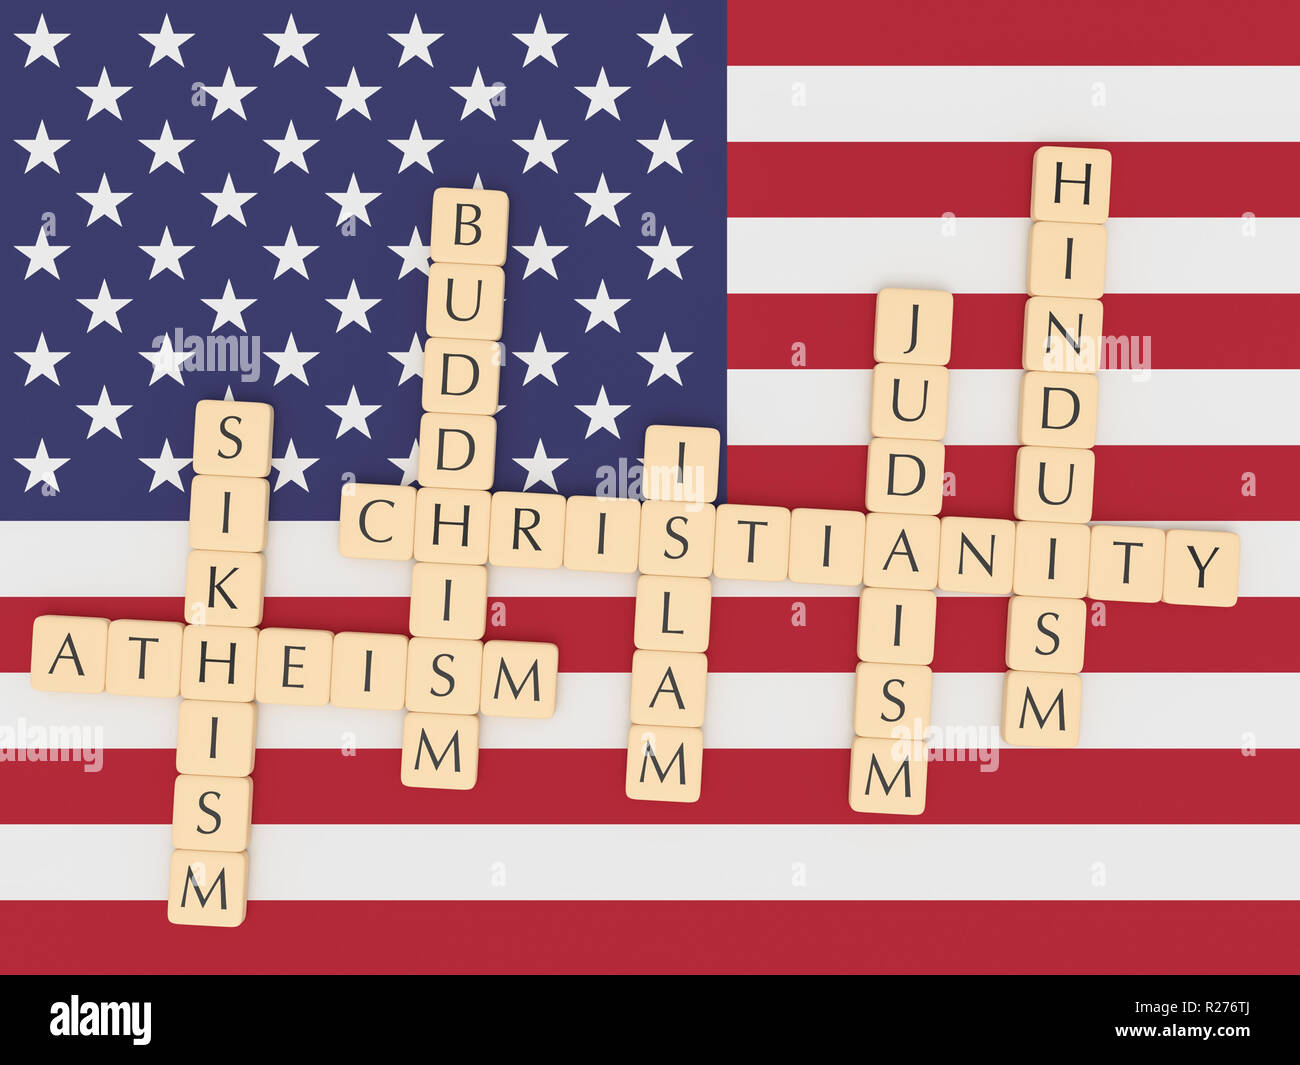 Religion Diversity In The USA Concept: Letter Tiles Creating The Words Christianity, Islam, Judaism, Buddhism, Hinduism, Sikhism, Atheism with US flag, 3d illustration - Stock Image